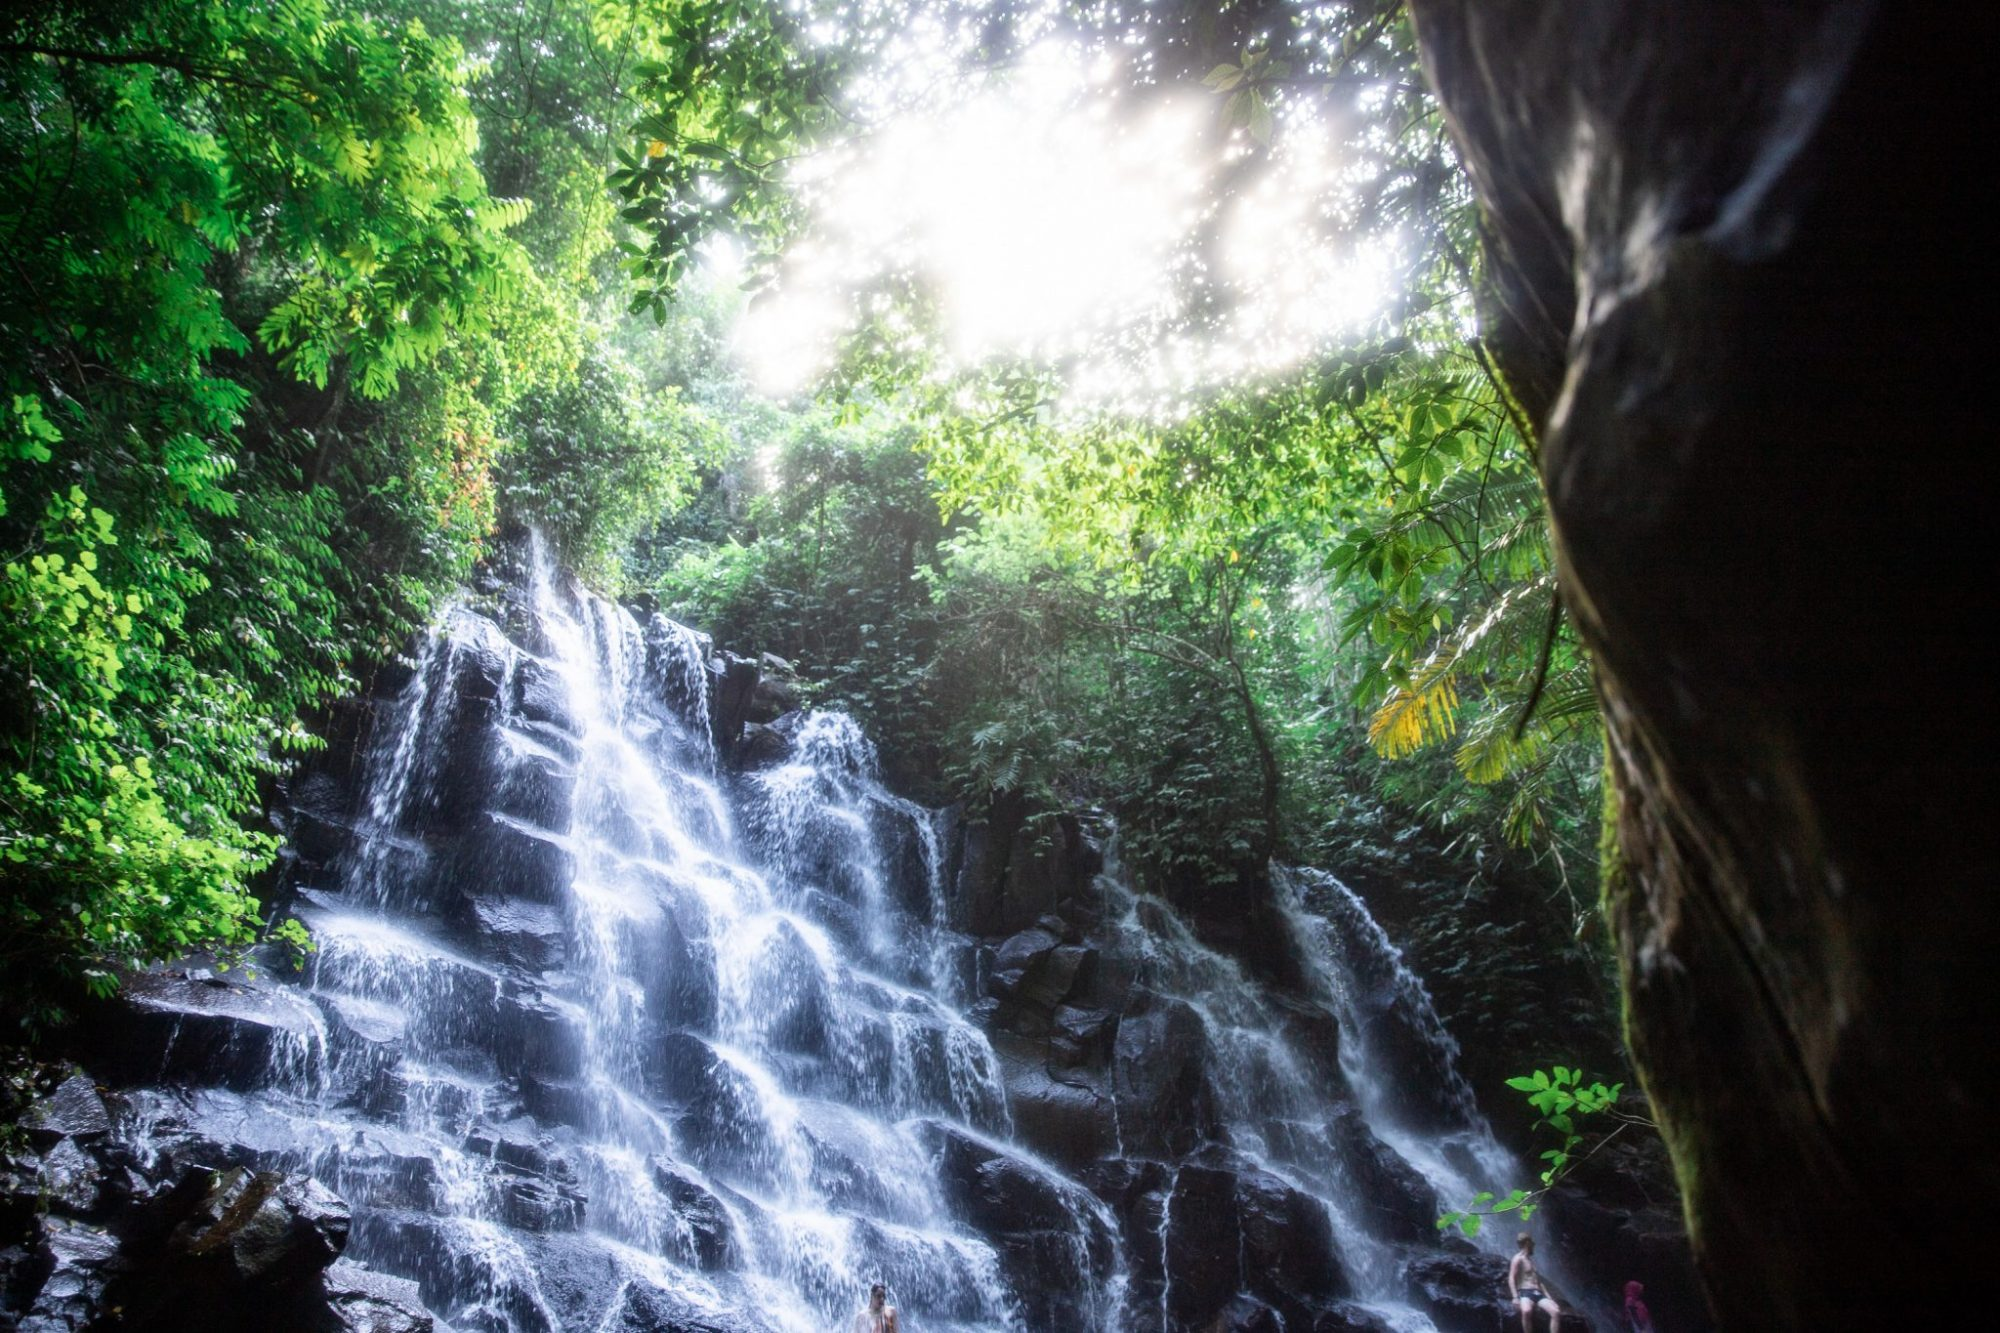 kanto lampo waterfall, things to do in bali, what to do in bali, waterfalls in bali, waterfalls in ubud, what to bring to bali